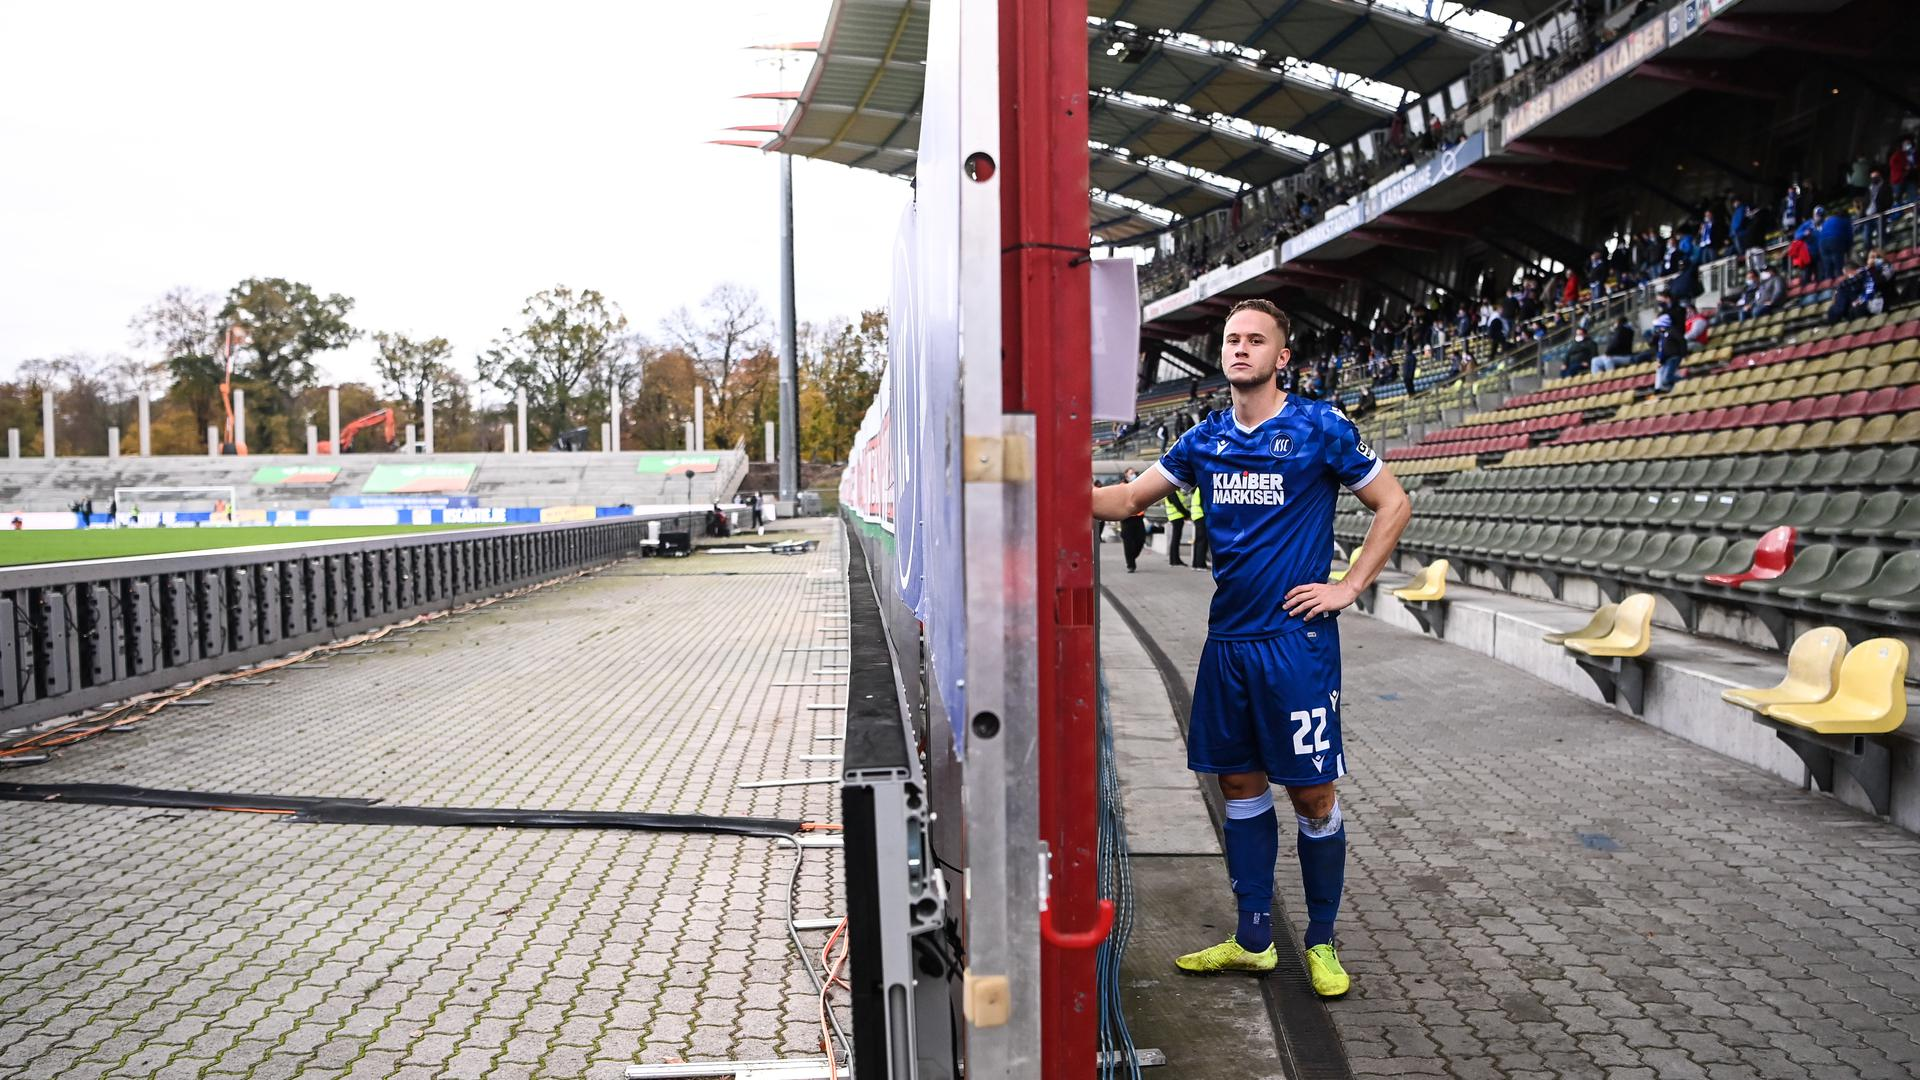 Christoph Kobald (KSC) nach dem Spiel und seiner gelb-roten Karte enttaeuscht.  GES/ Fussball/ 2. Bundesliga: Karlsruher SC - SV Darmstadt 98, 01.11.2020  Football / Soccer: 2nd League: Karlsruher Sport-Club vs SV Darmstadt 98, Karlsruhe, November 1, 2020